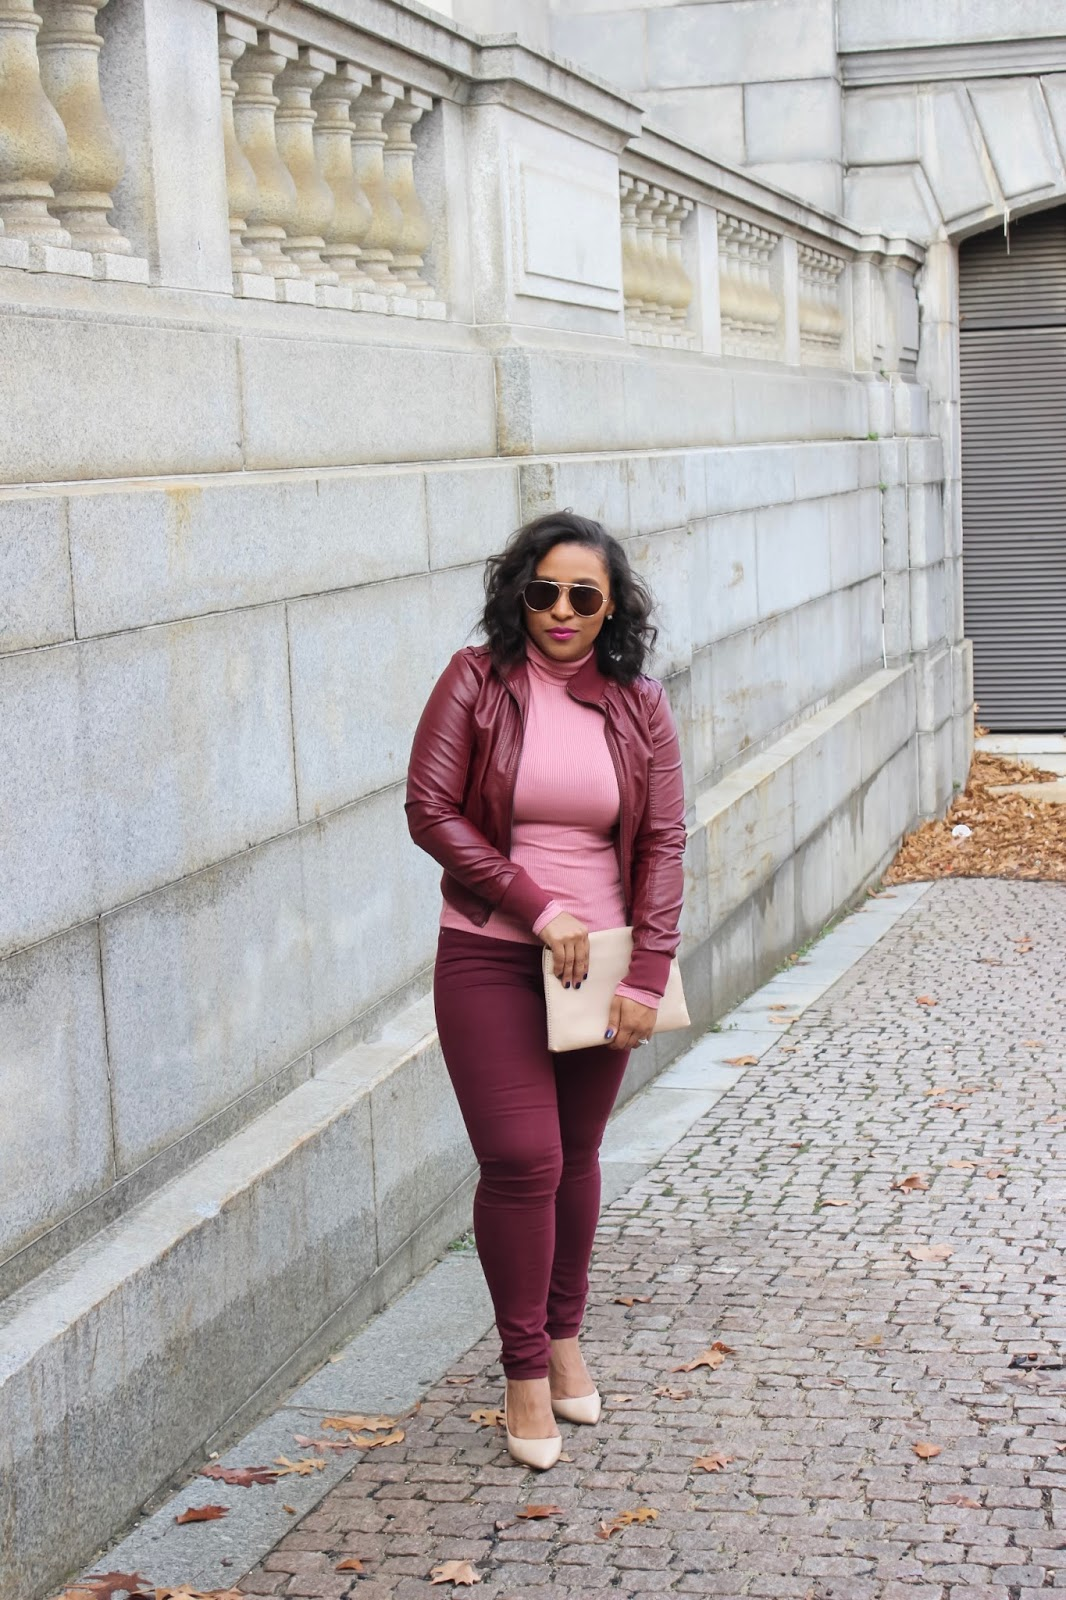 monochrome, pink outfit, the monochrome trend, how to wear monochrome, monochrome outfits